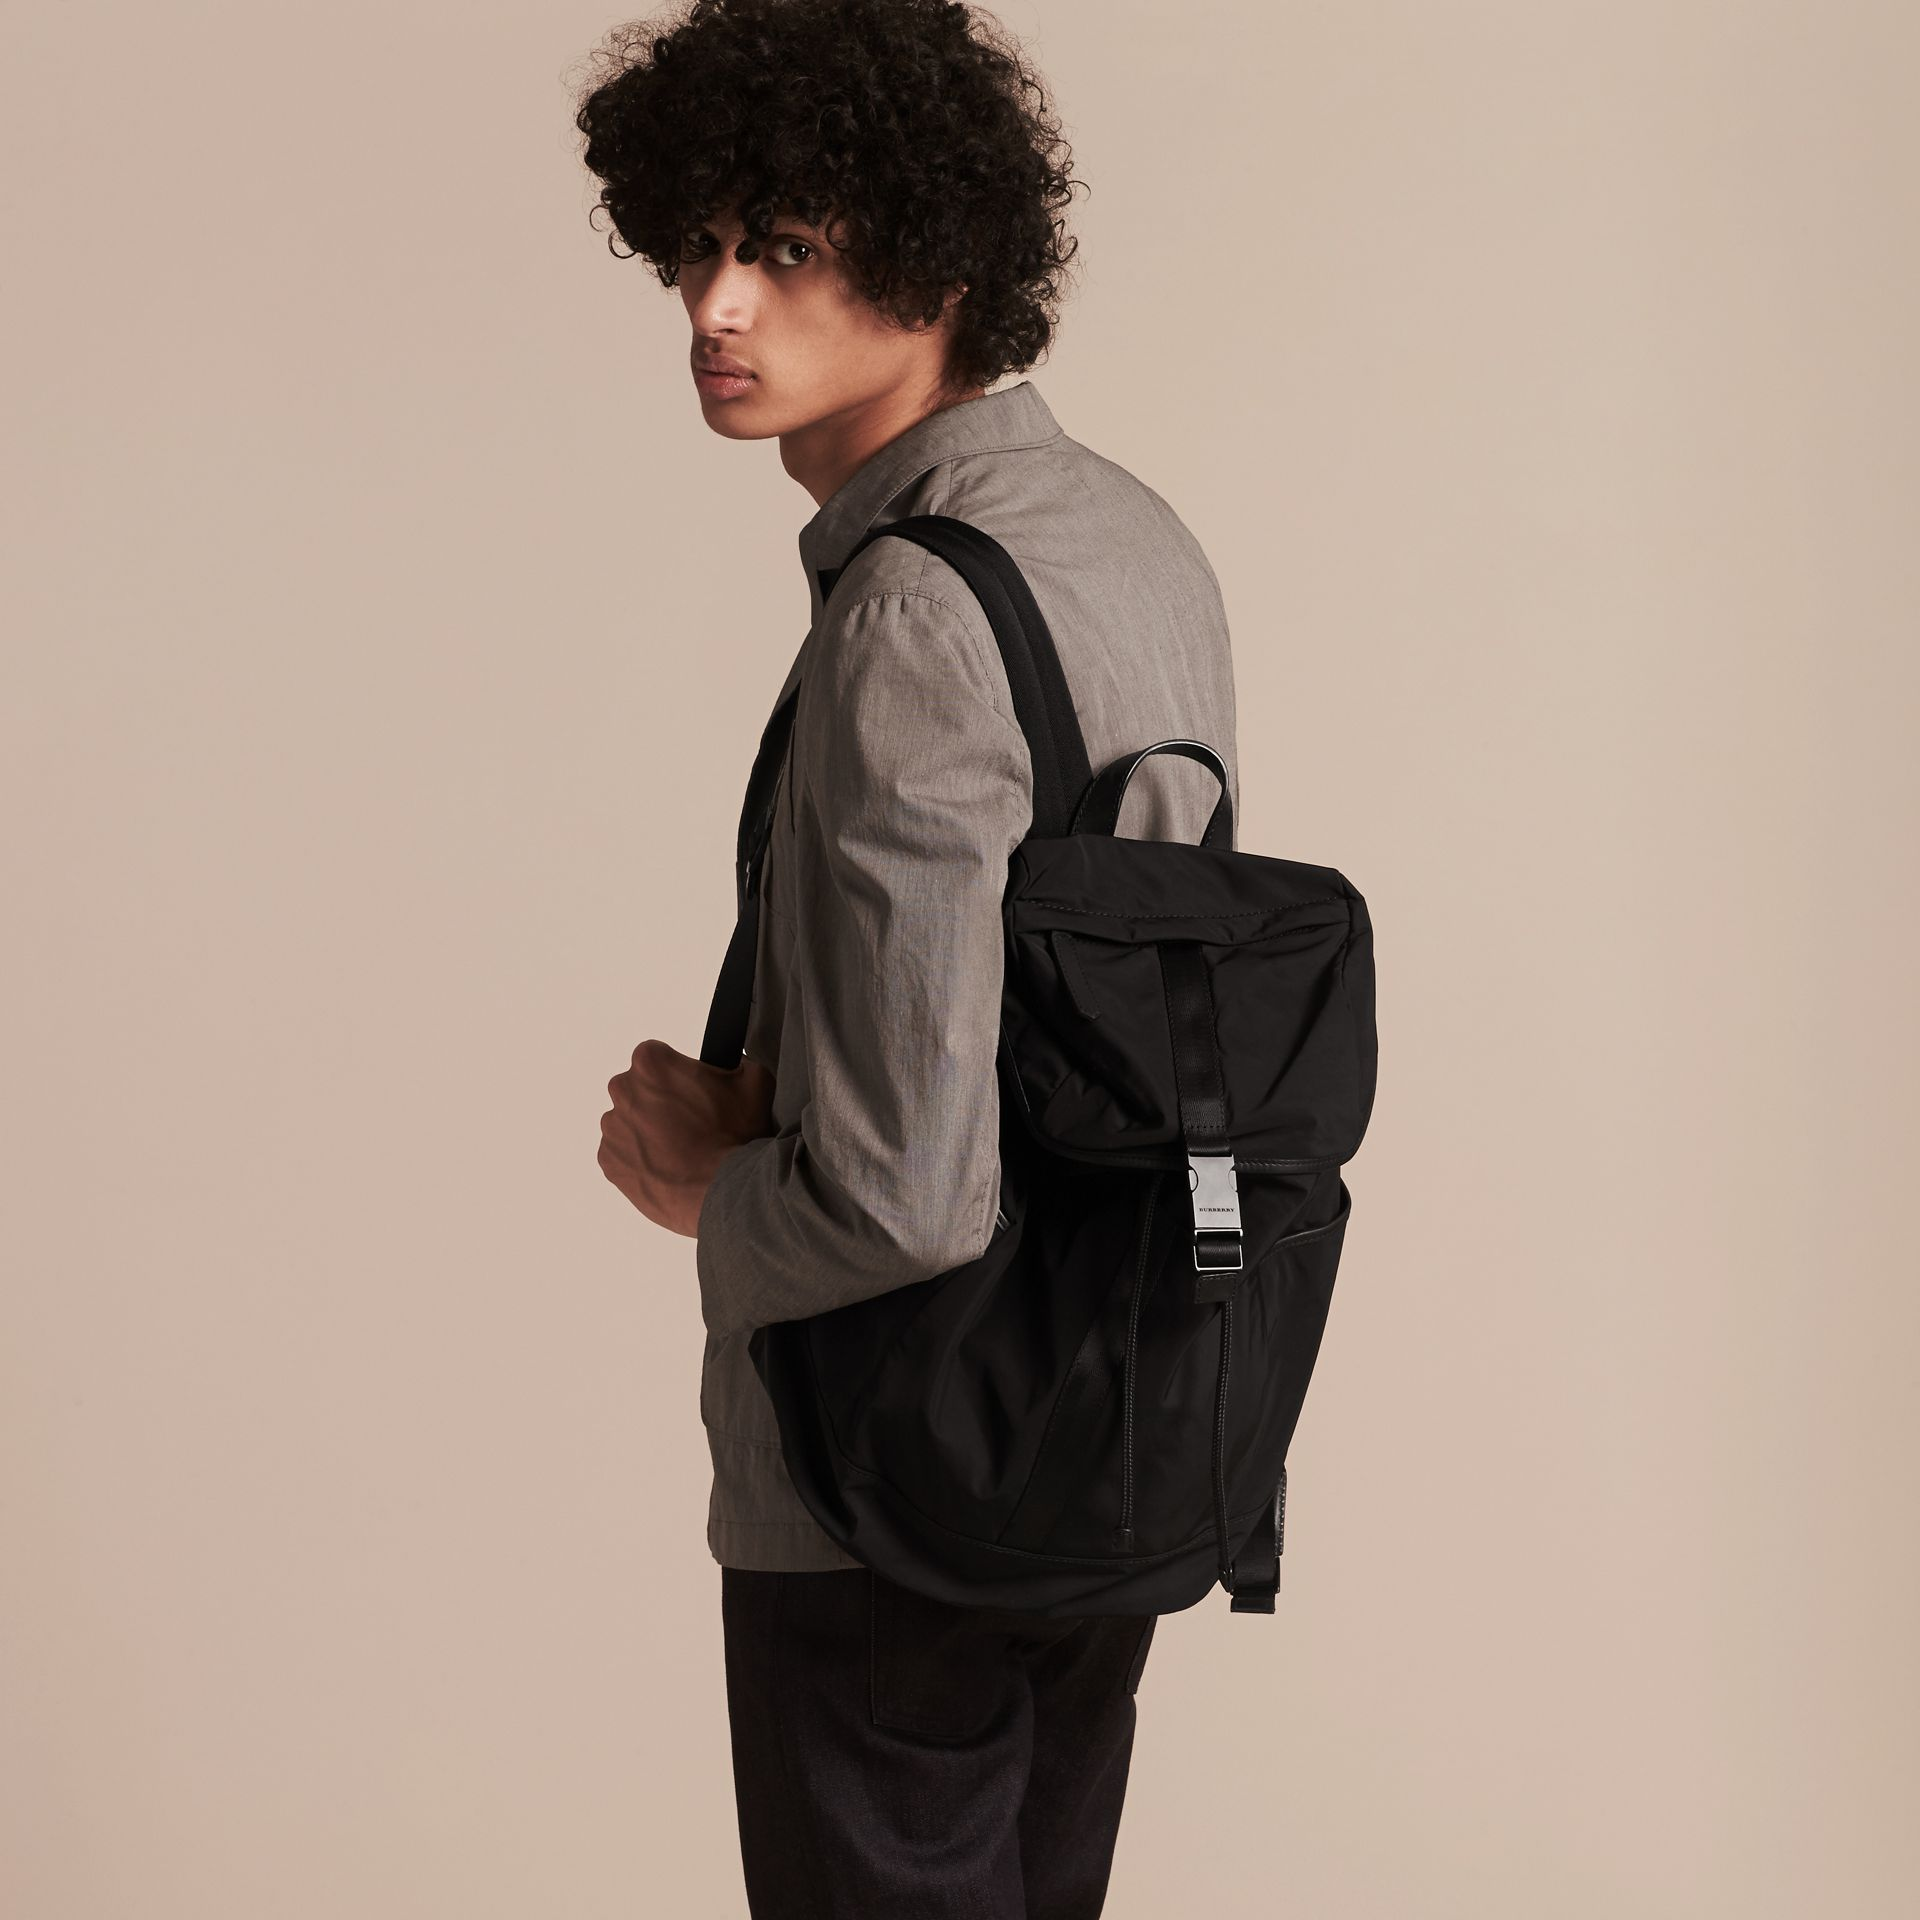 Black Leather Trim Lightweight Backpack Black - gallery image 3